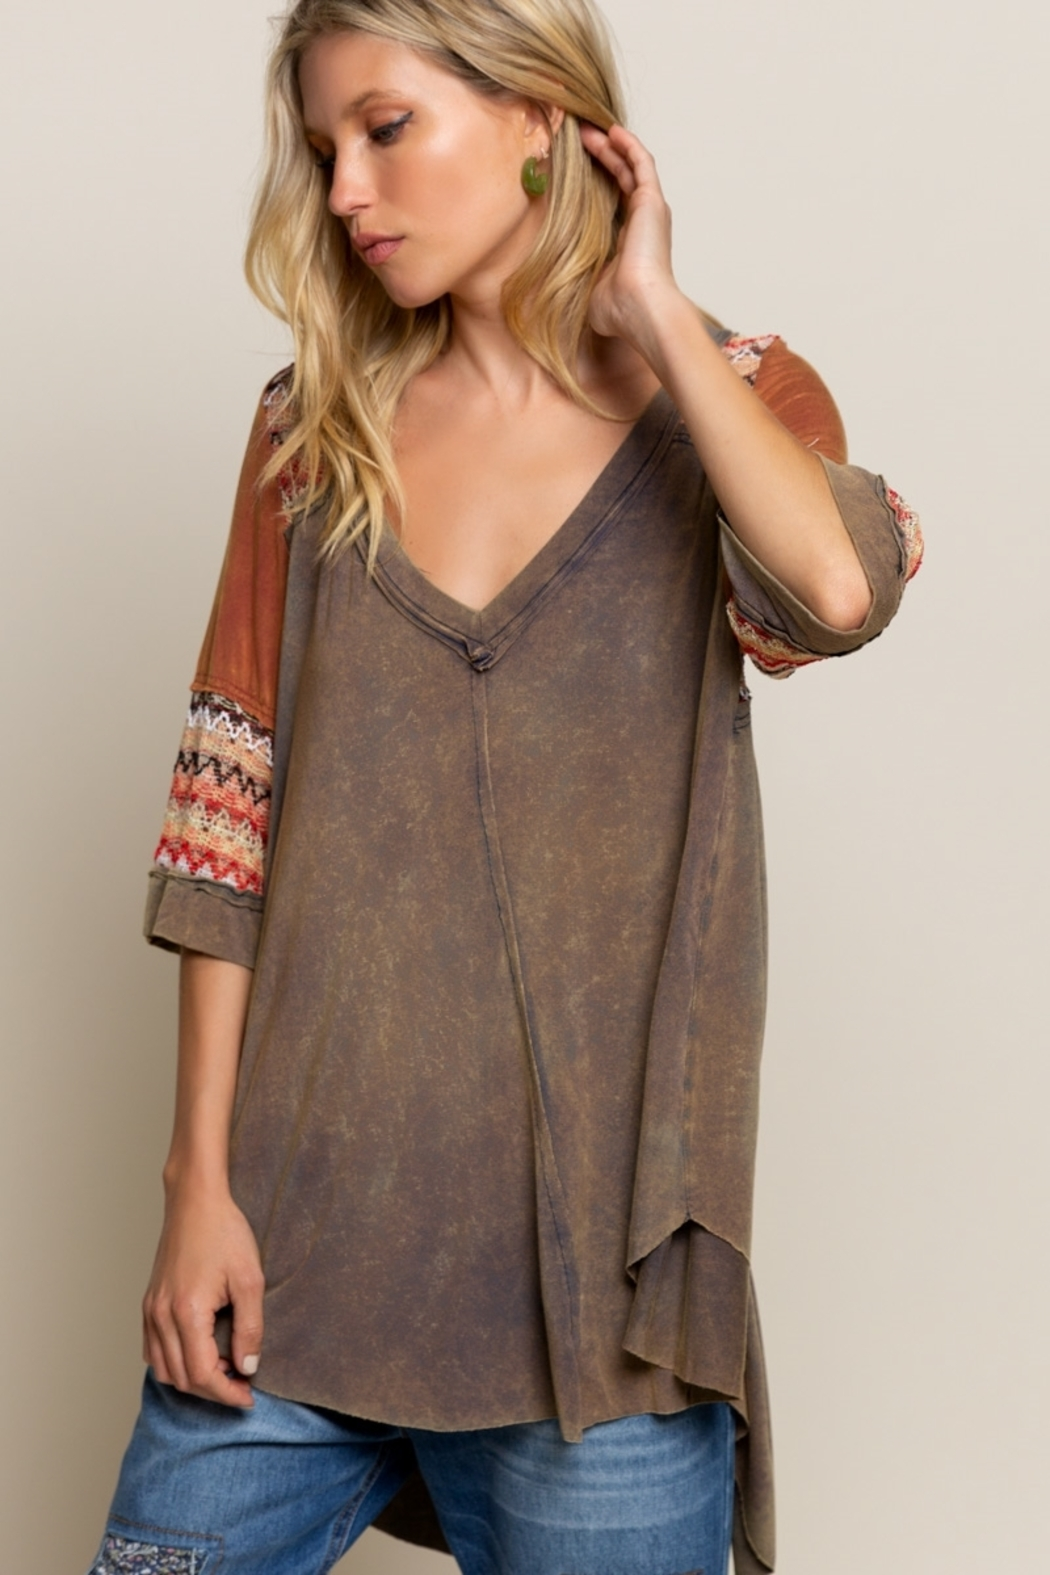 Pol Clothing BOHO Olive Brown Knit Top - Side Cropped Image